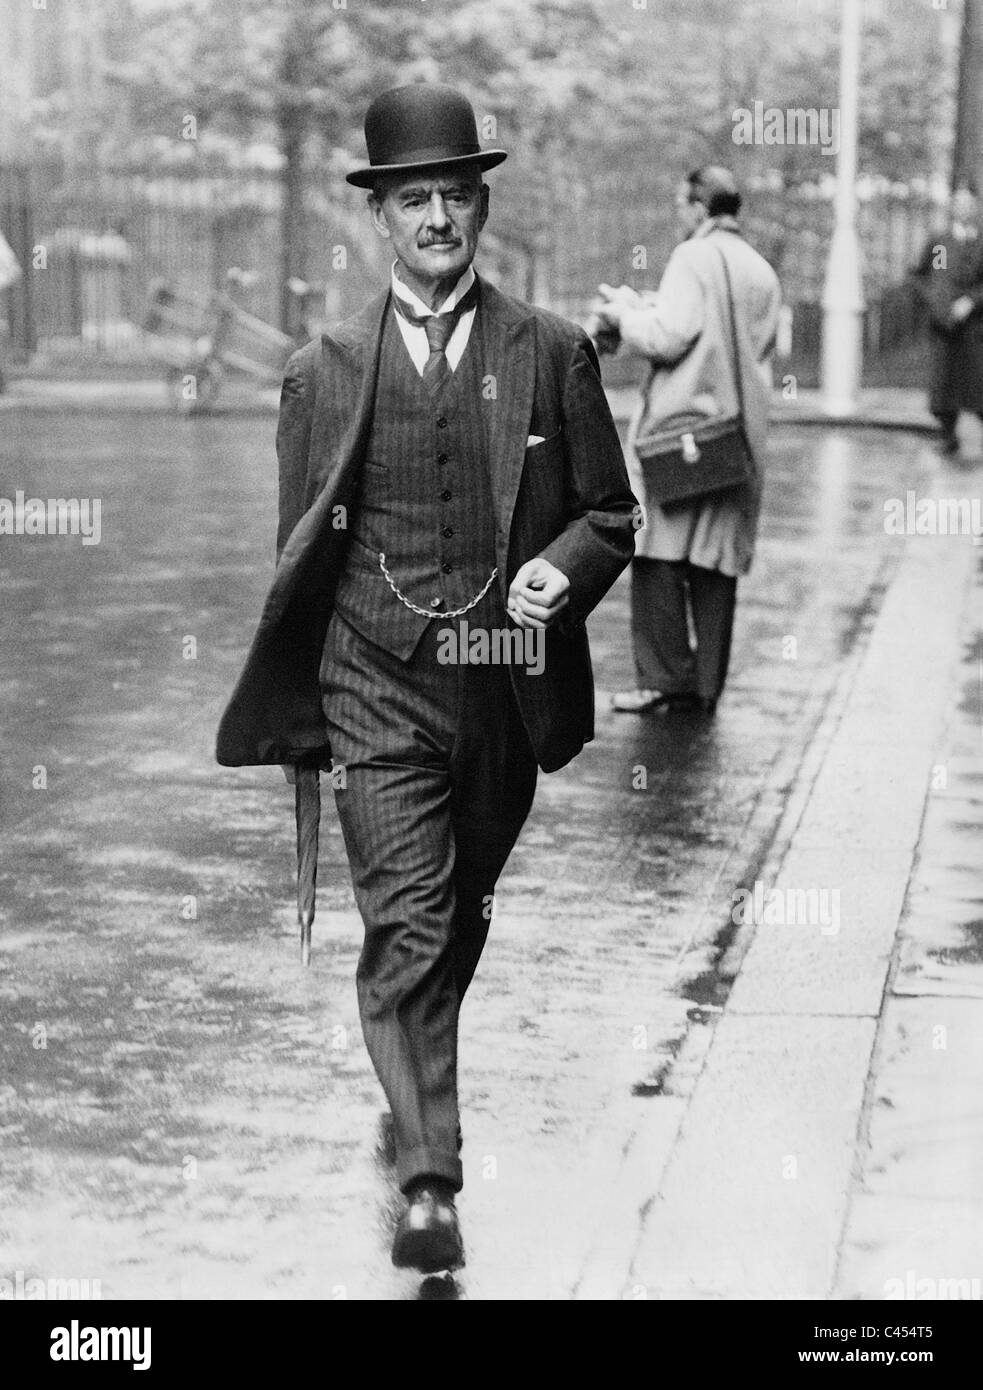 arthur neville chamberlain essay The english statesman arthur neville chamberlain (1869-1940) was prime minister of great britain in the years preceding world war ii he is associated with the policy of appeasement toward nazi german.